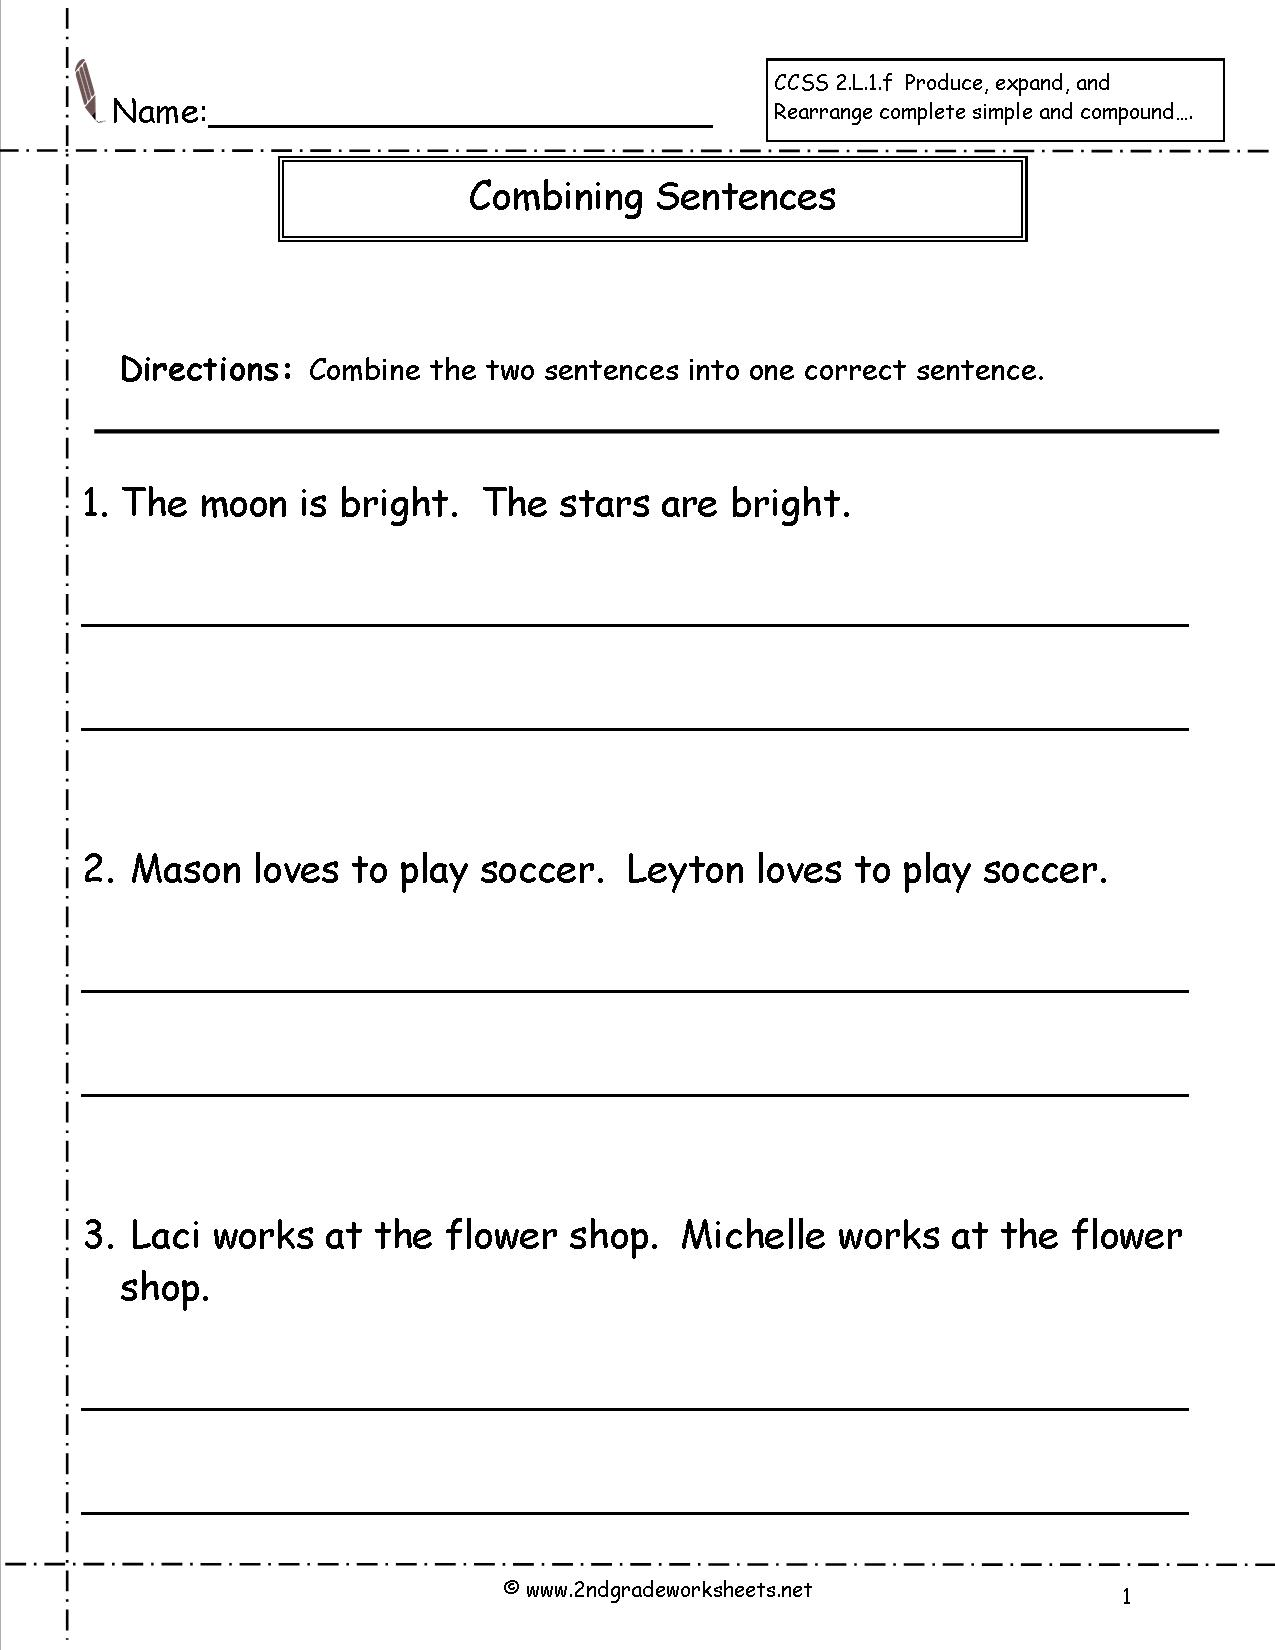 11 Best Images Of Free Printable English Worksheets